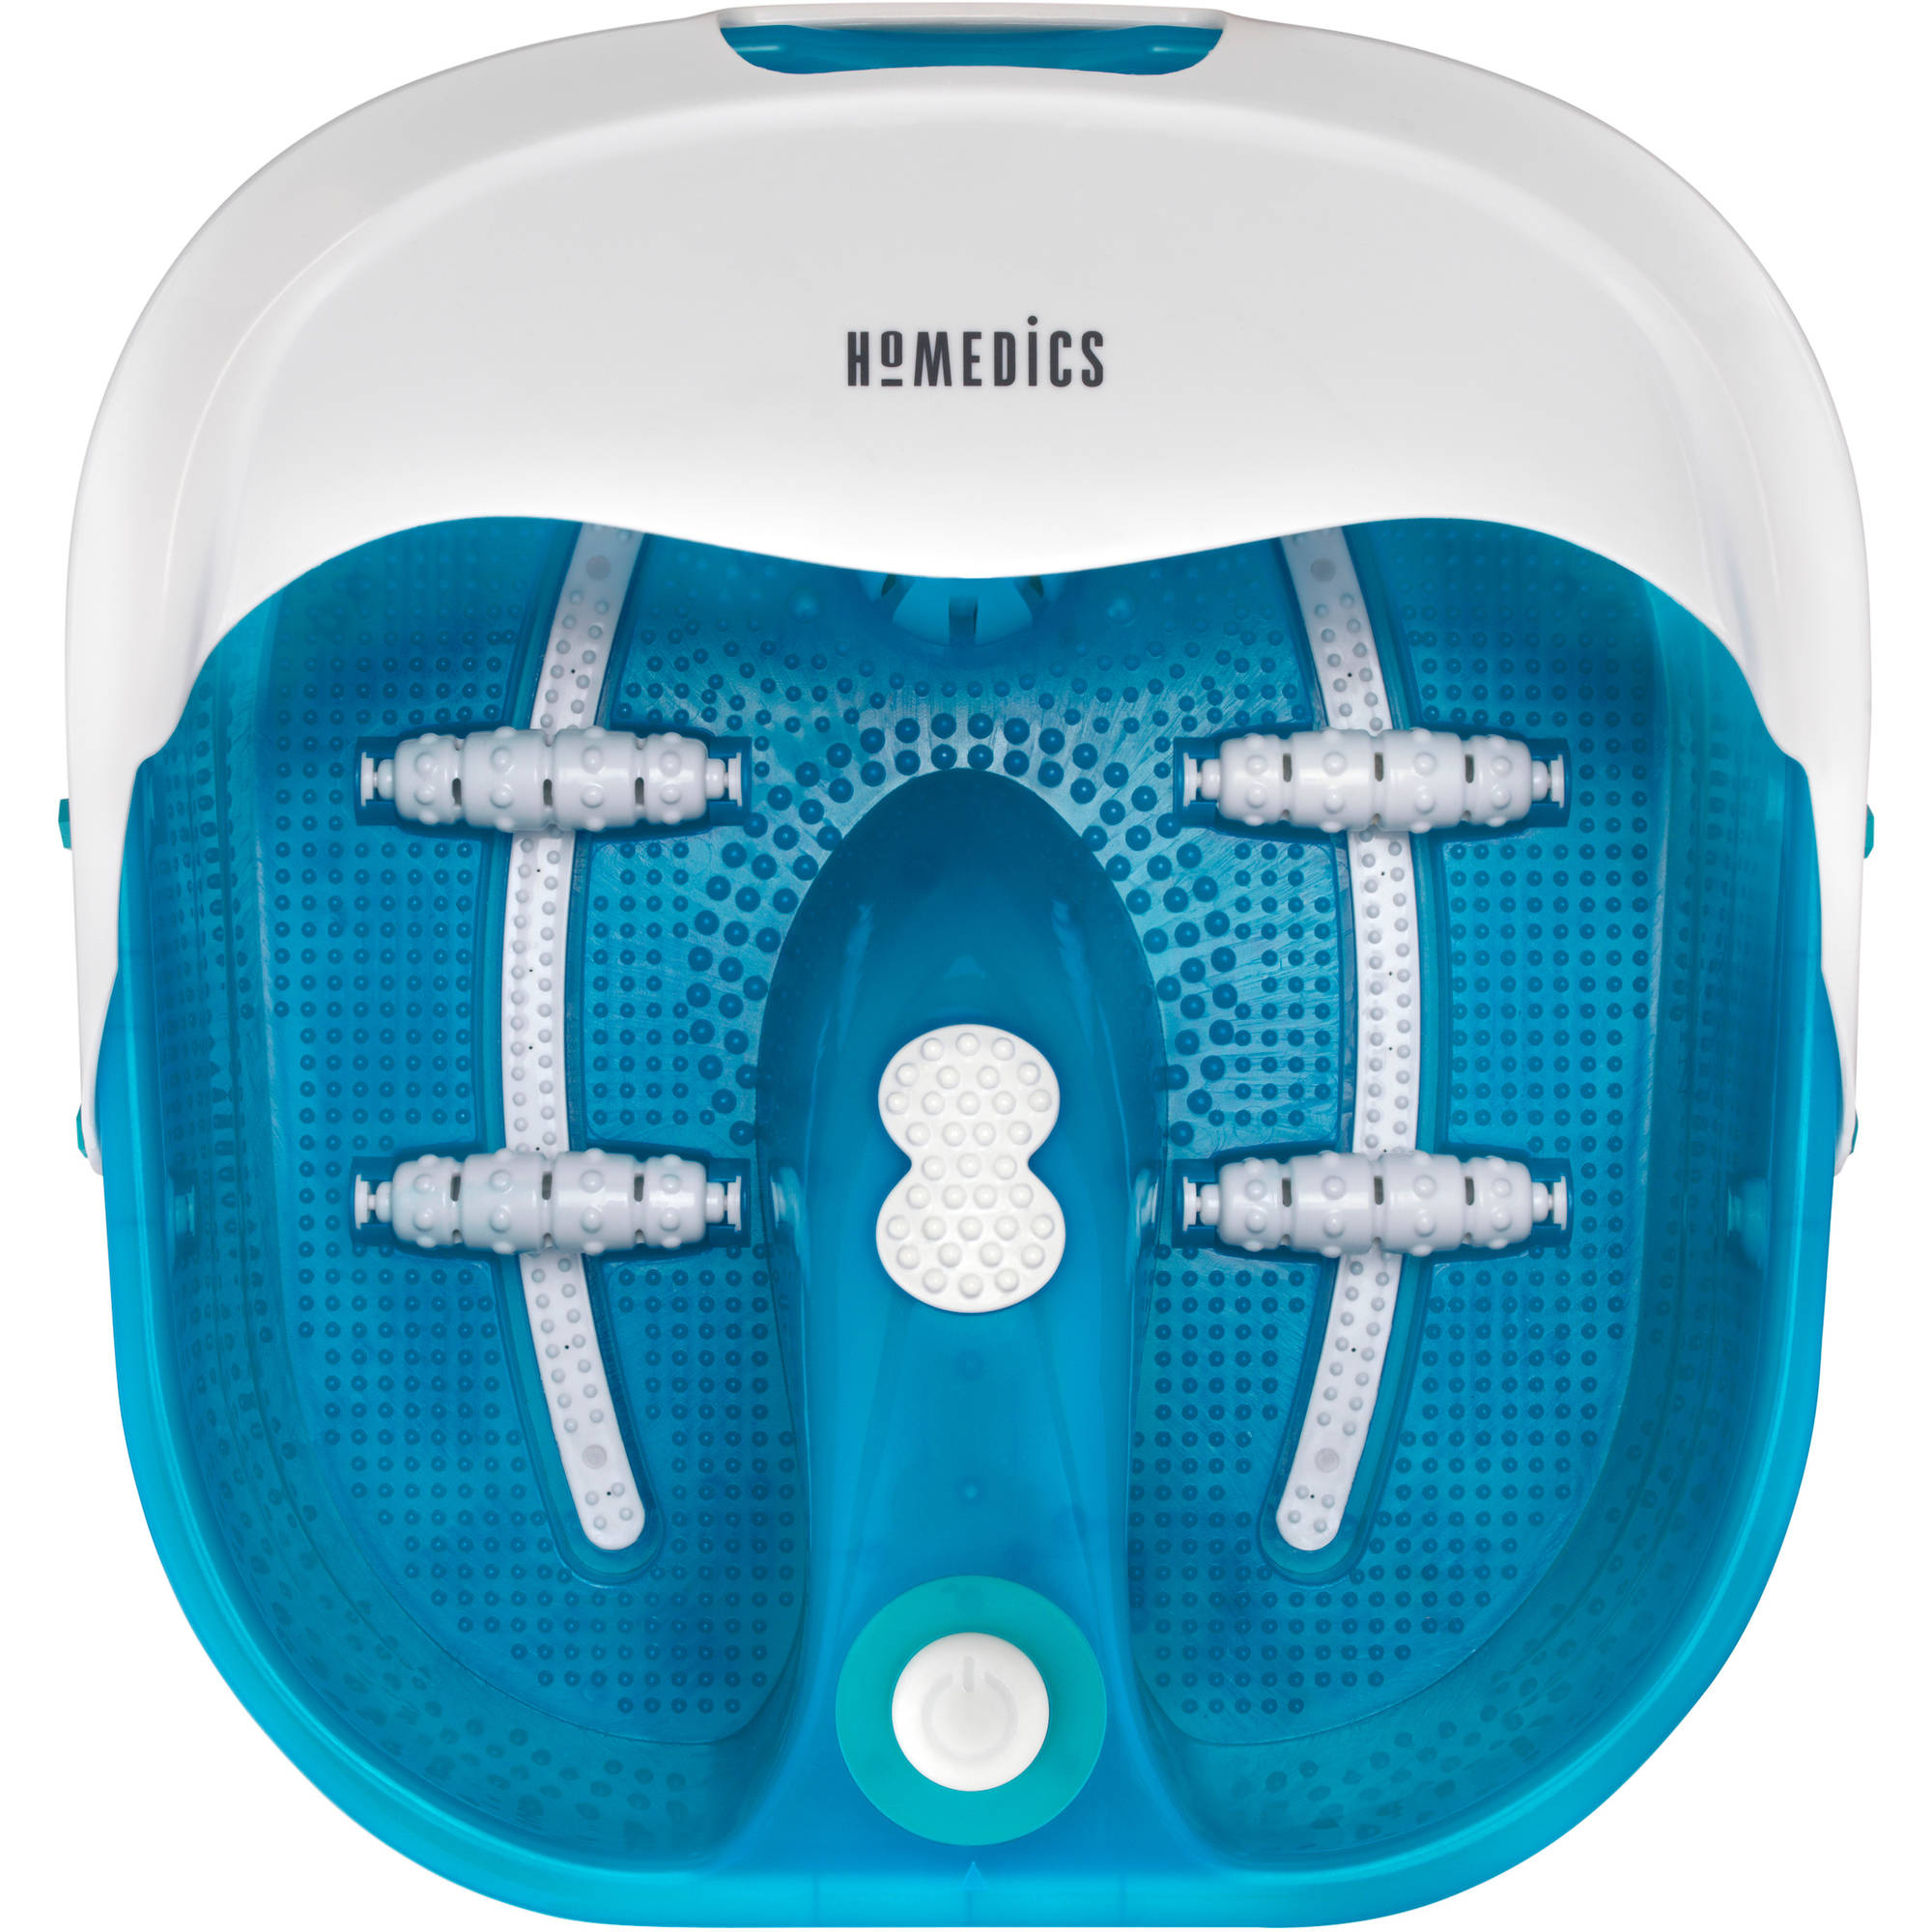 HoMedics Bubble Therapy Foot Spa with Heat Boost Power